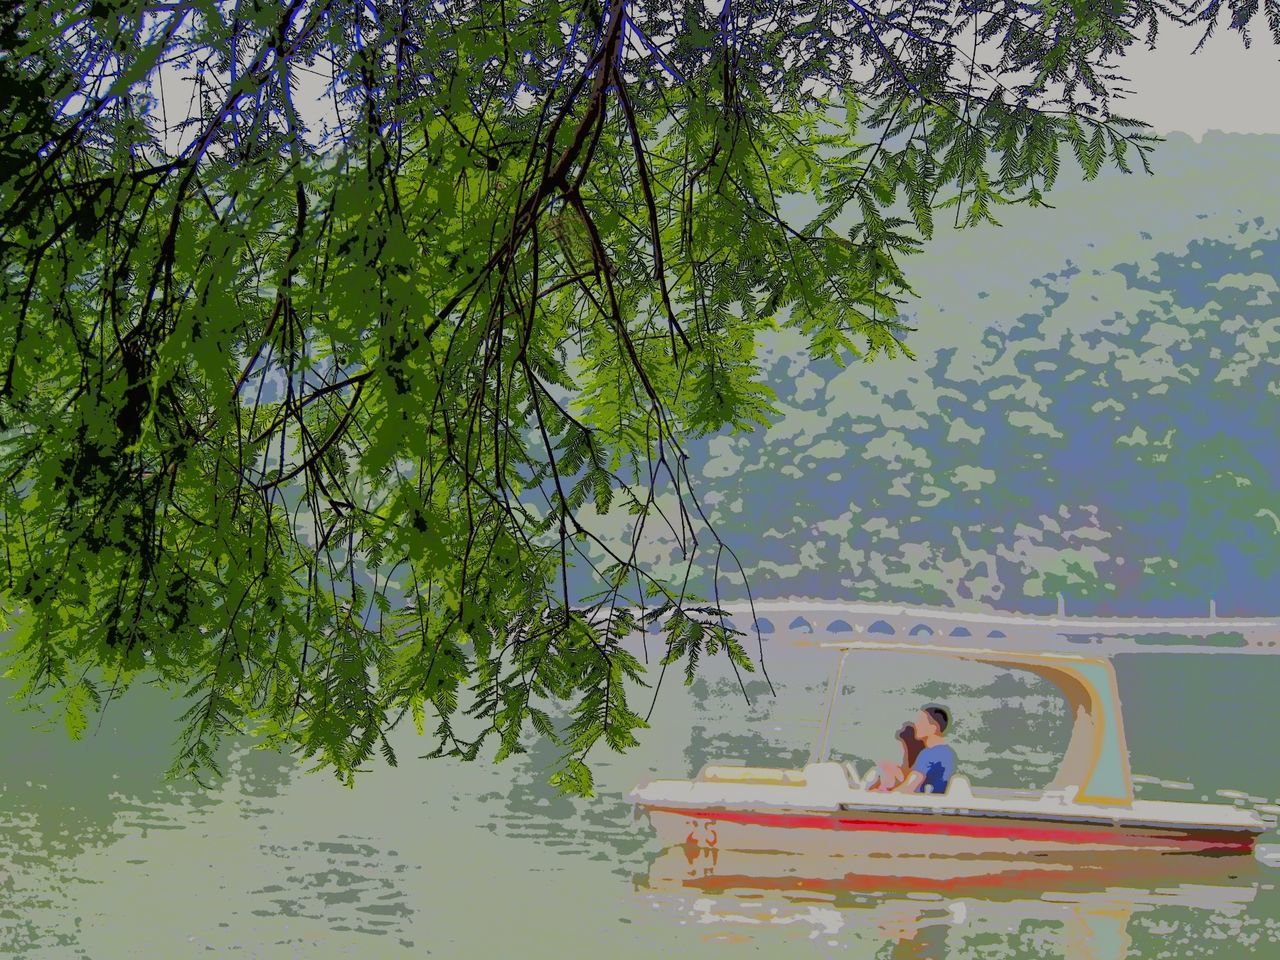 water, tree, real people, leisure activity, nature, lifestyles, nautical vessel, day, waterfront, one person, beauty in nature, outdoors, swimming pool, growth, sitting, tranquility, transportation, men, floating on water, weekend activities, lake, women, vacations, scenics, branch, sailing, young adult, jet boat, sky, people